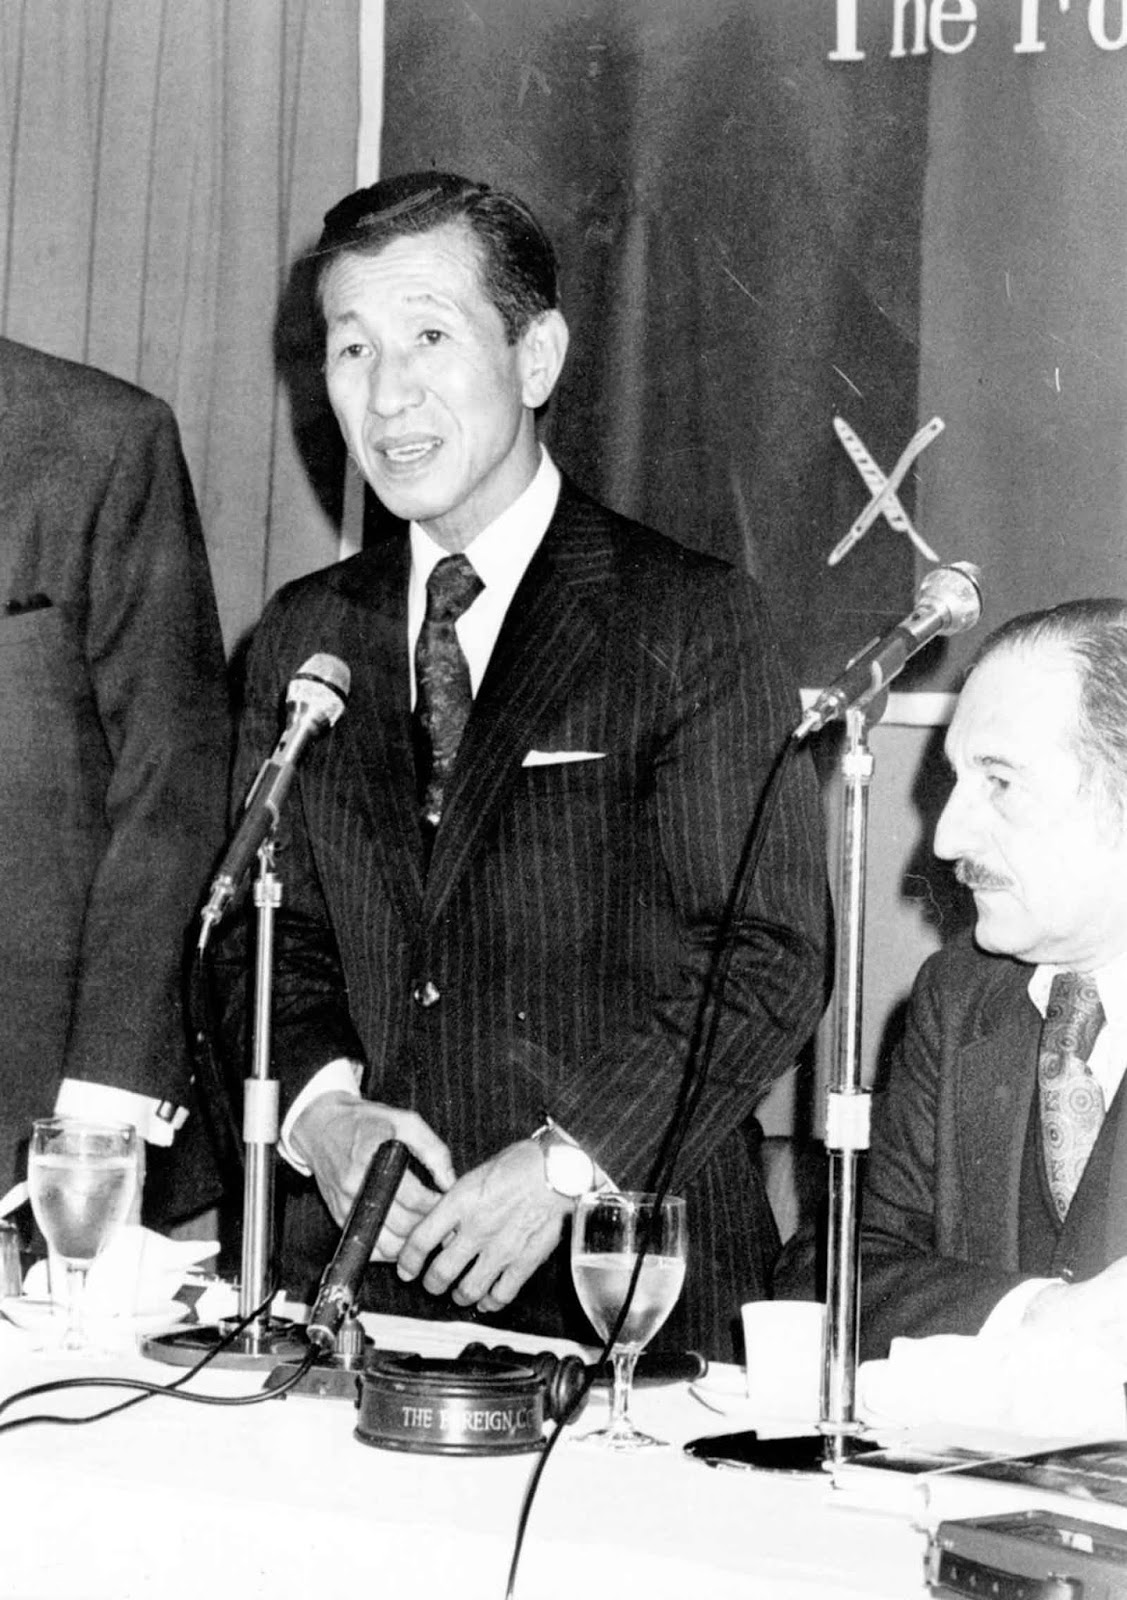 Onoda speaks at a Press Club luncheon in his honor. February 25, 1975.